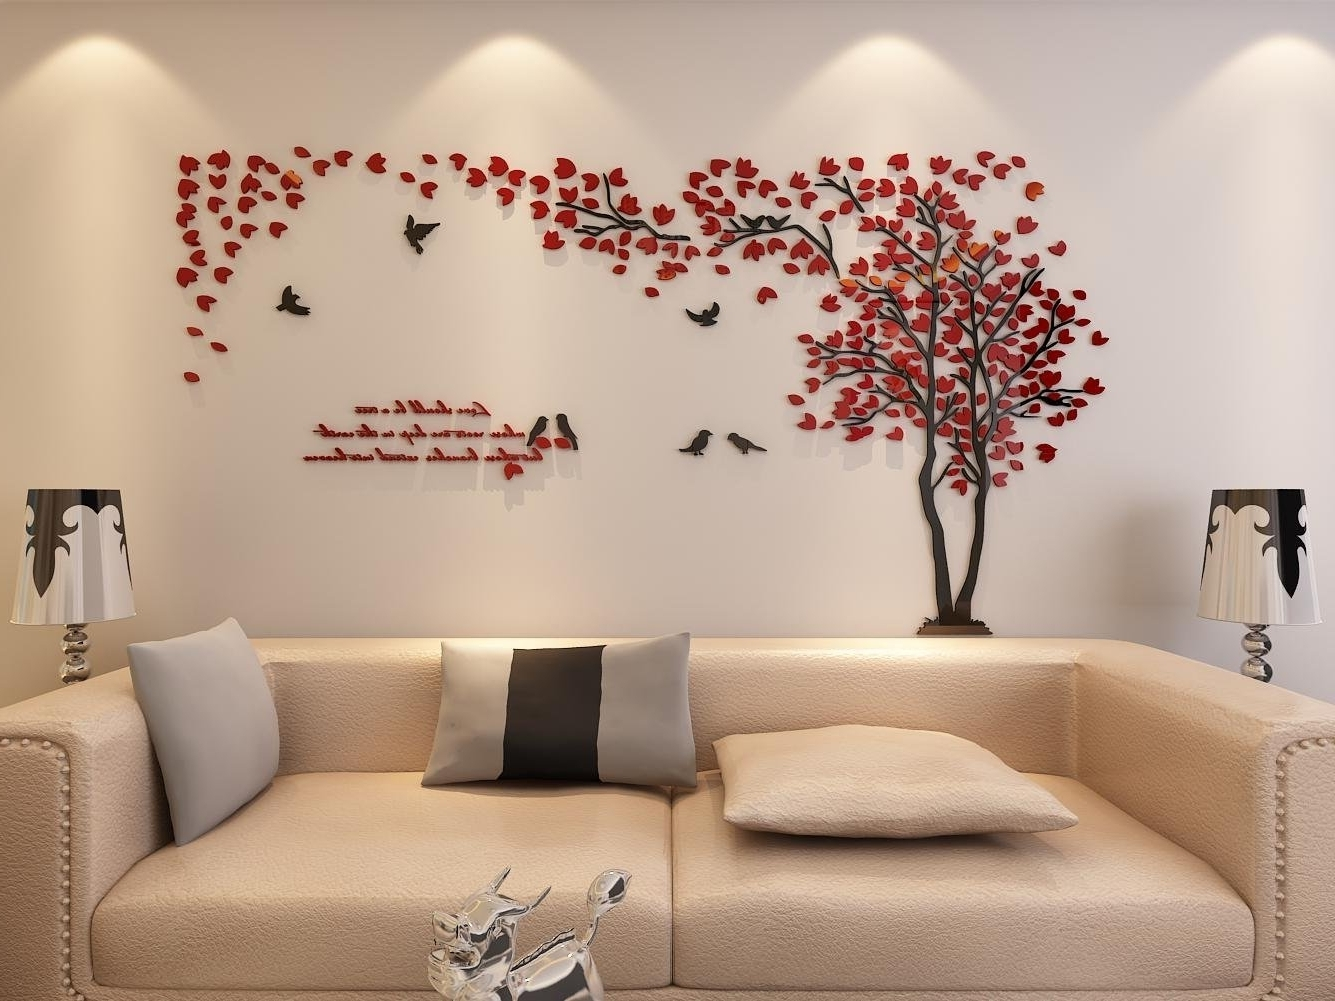 Amazon: 3D Couple Tree Wall Murals For Living Room Bedroom With Regard To Trendy Amazon Wall Accents (View 7 of 15)